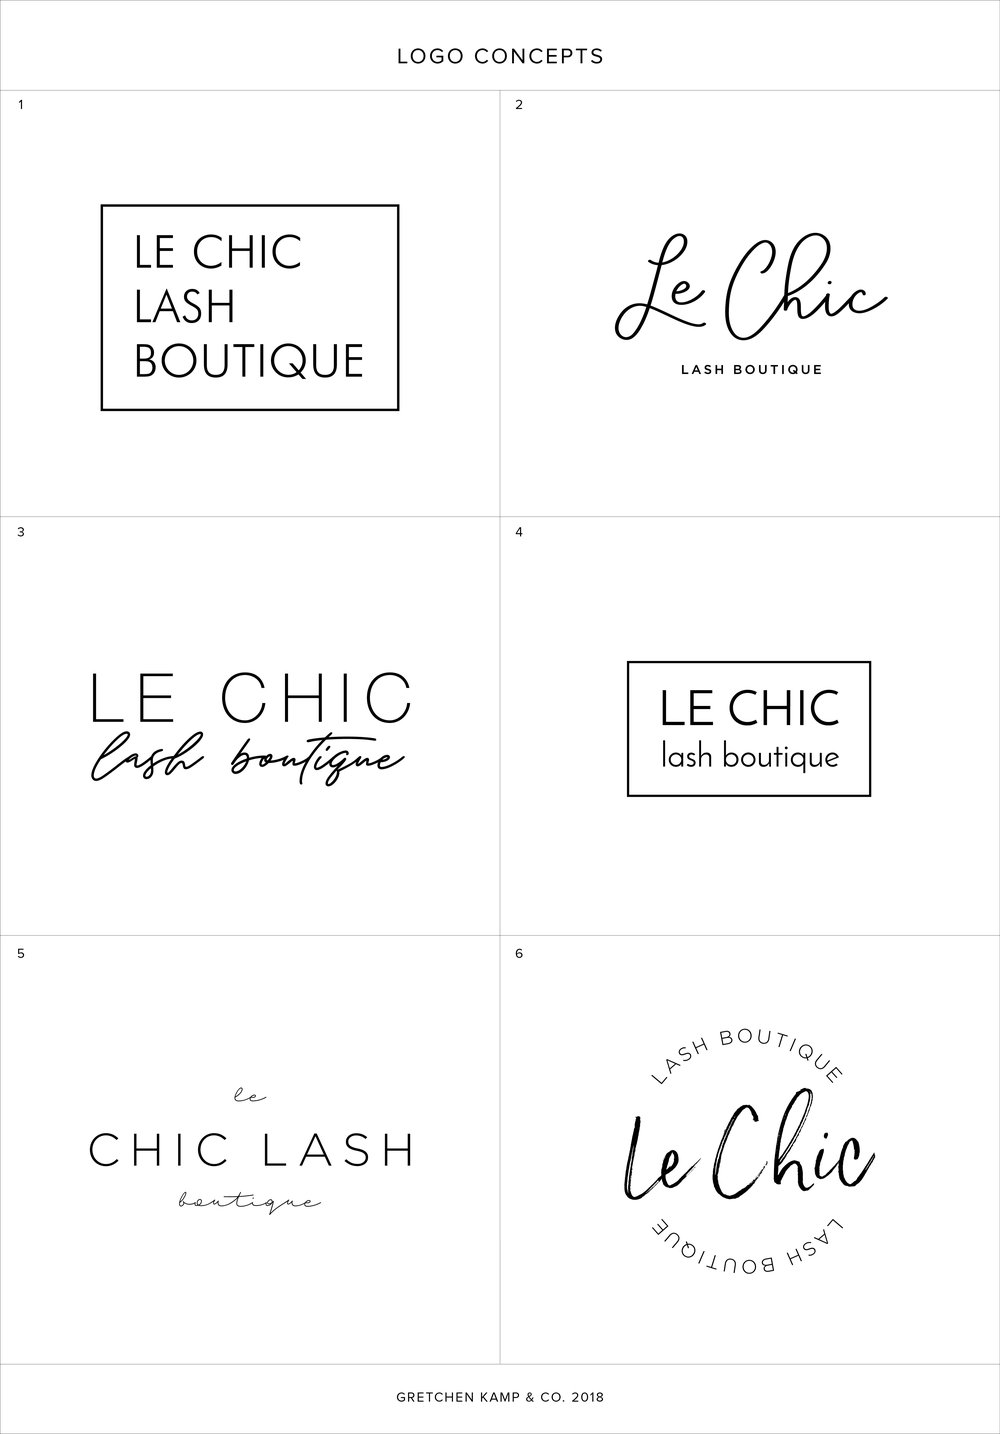 Le Chic Lash Boutique Logo Concepts by Gretchen Kamp